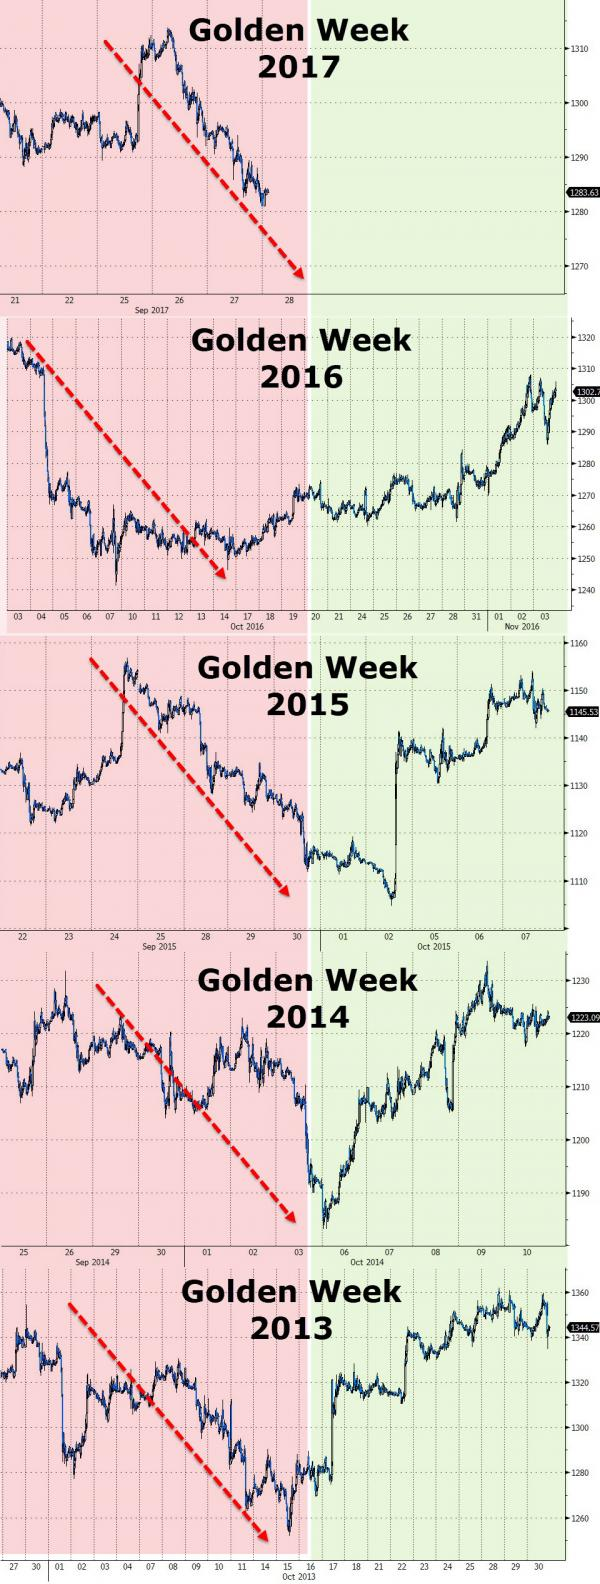 Gold Matches S&P 500 Performance In First 3 Quarters; Up 12% 2017 YTD Gold Matches S&P 500 Performance In First 3 Quarters; Up 12% 2017 YTD 20170927 golden 0